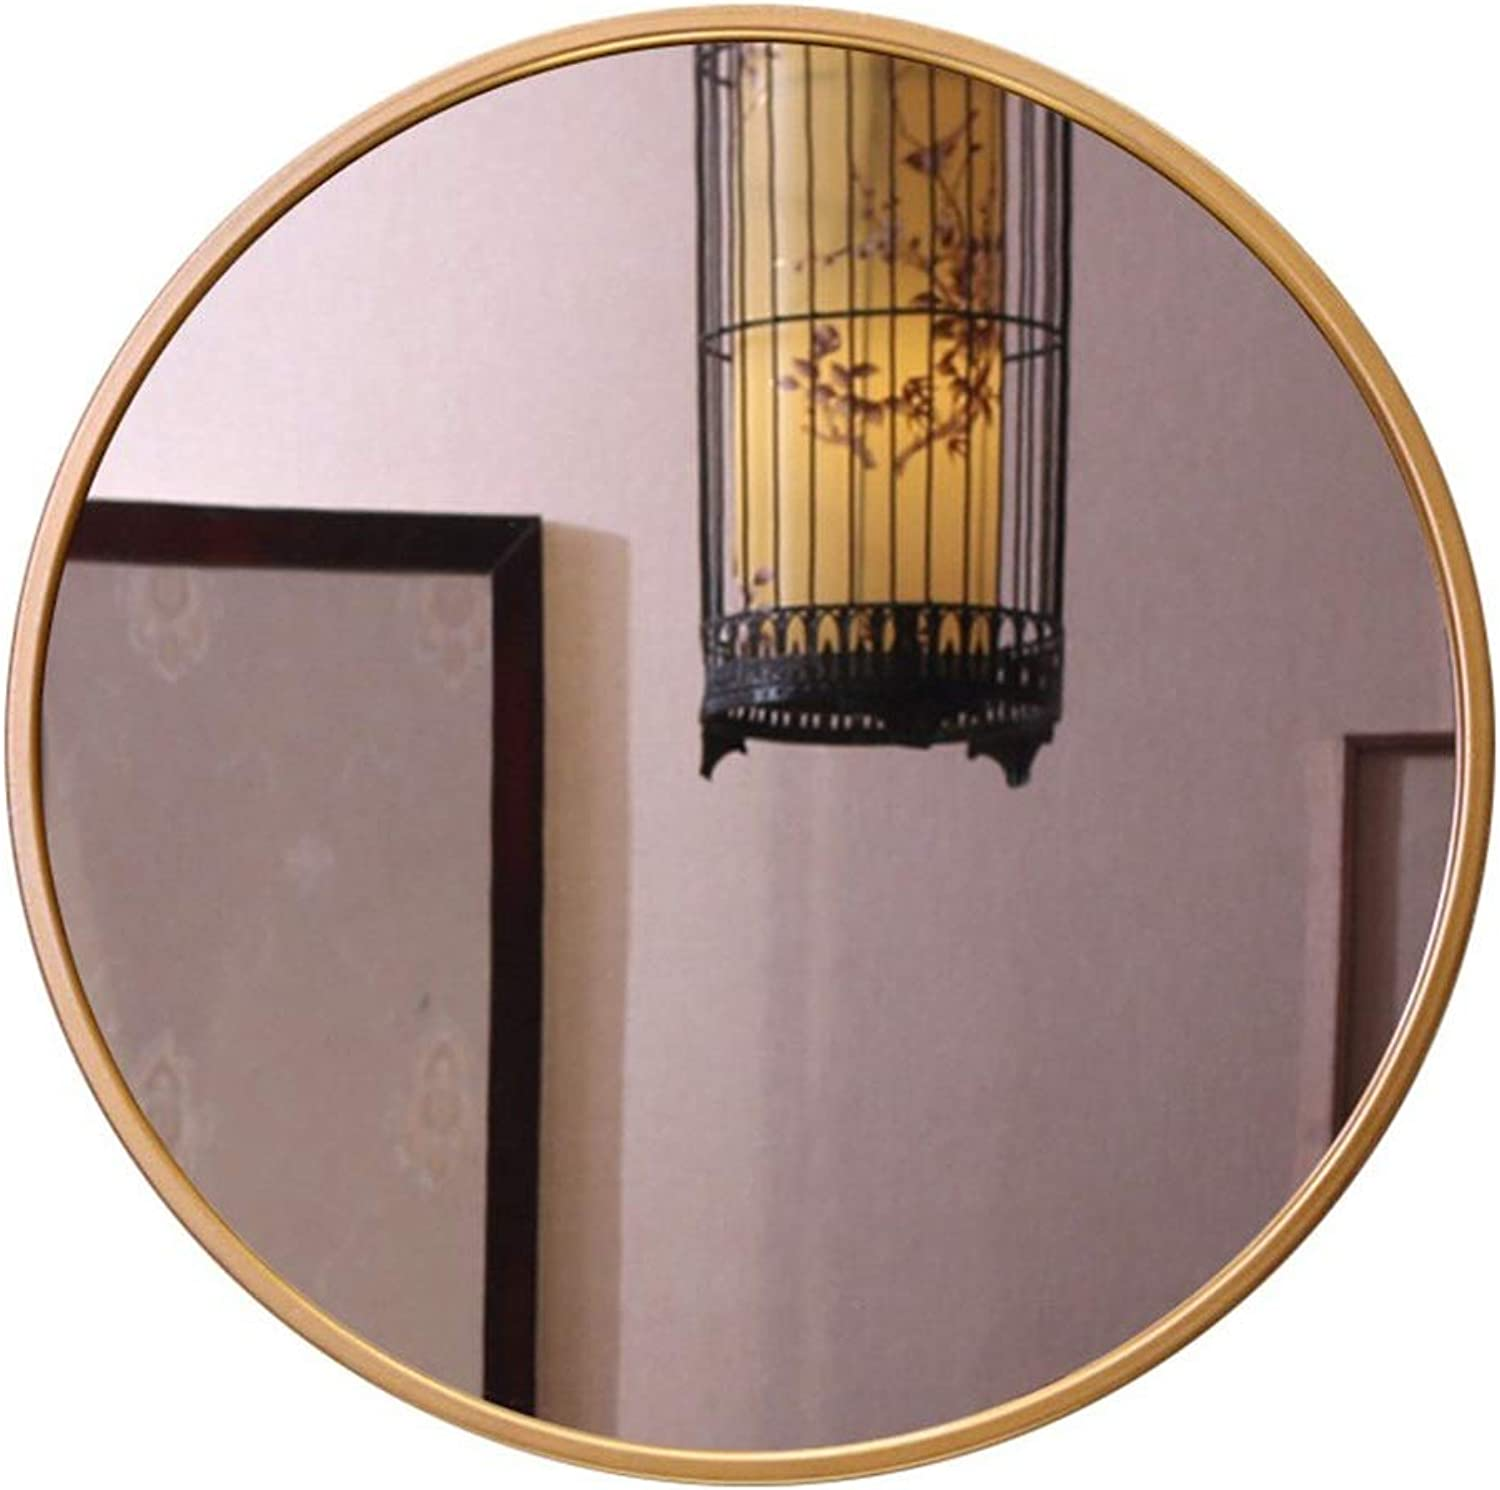 Sdvh Wall Mirrors for Living Room gold, Iron Bathroom Mirror Household Wall-Mounted Vanity Mirror Bathroom Mirror Round Mirror (color   gold, Size   30cm)